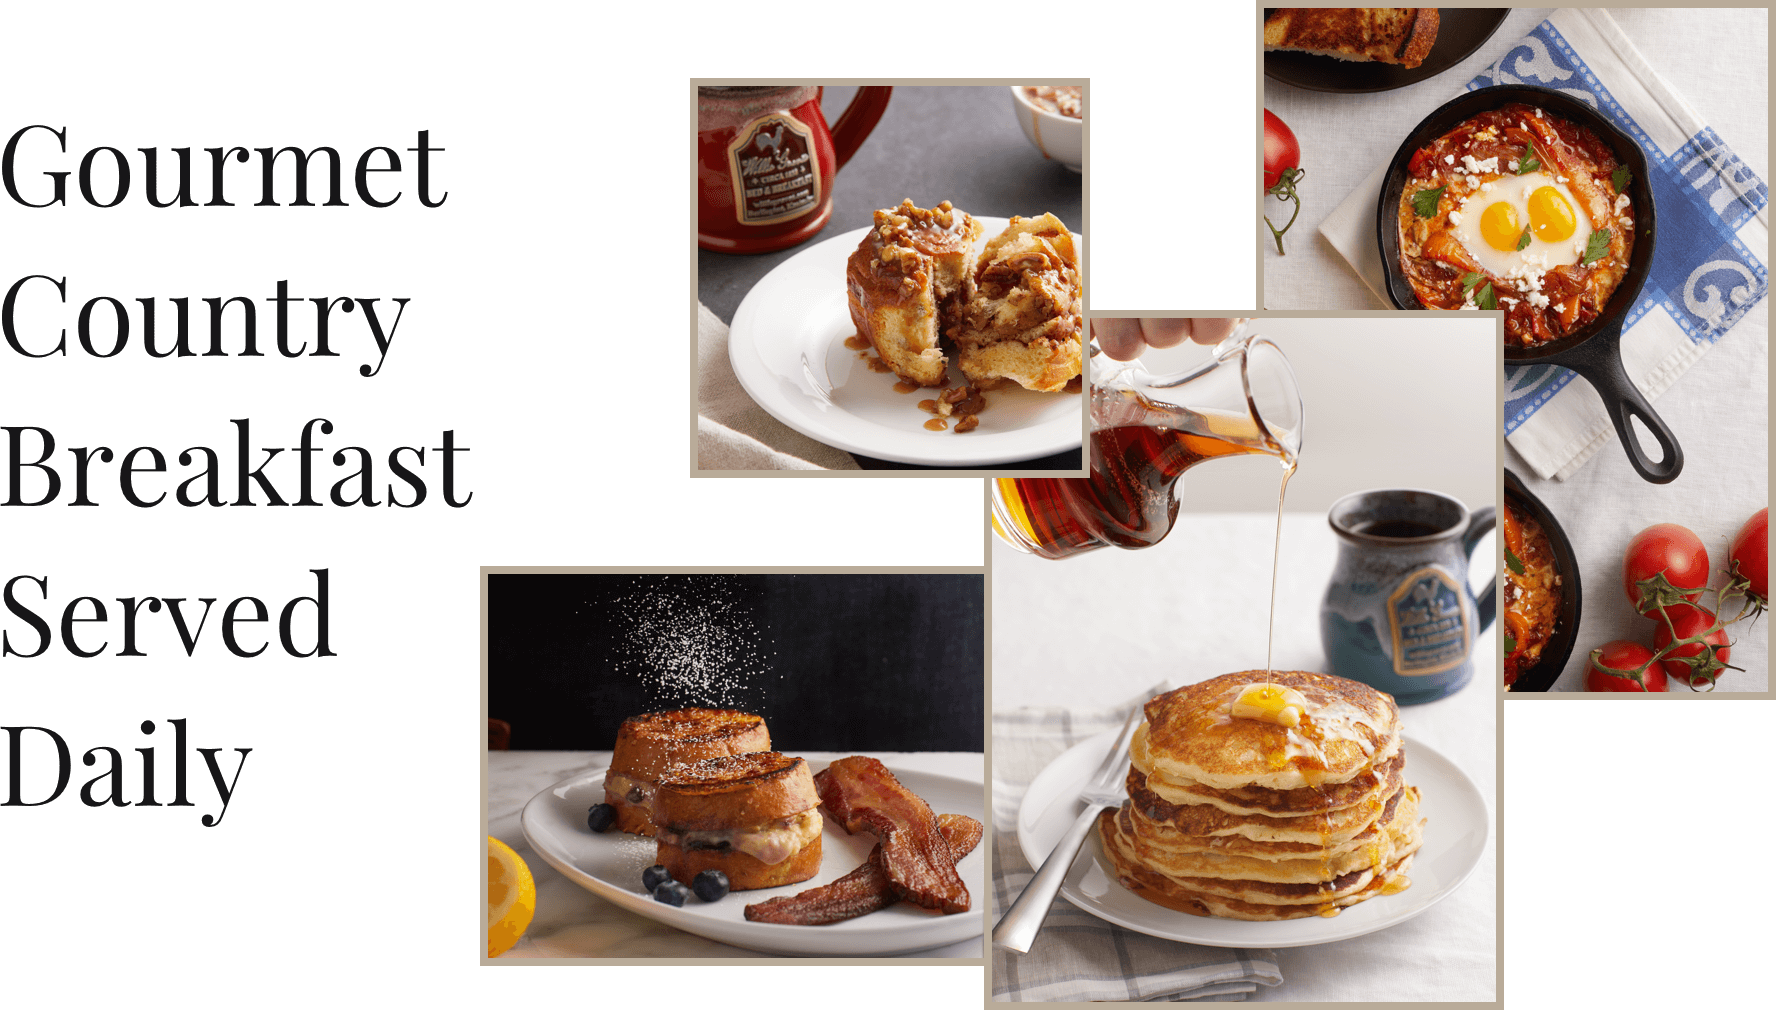 Gourmet country breakfast served daily